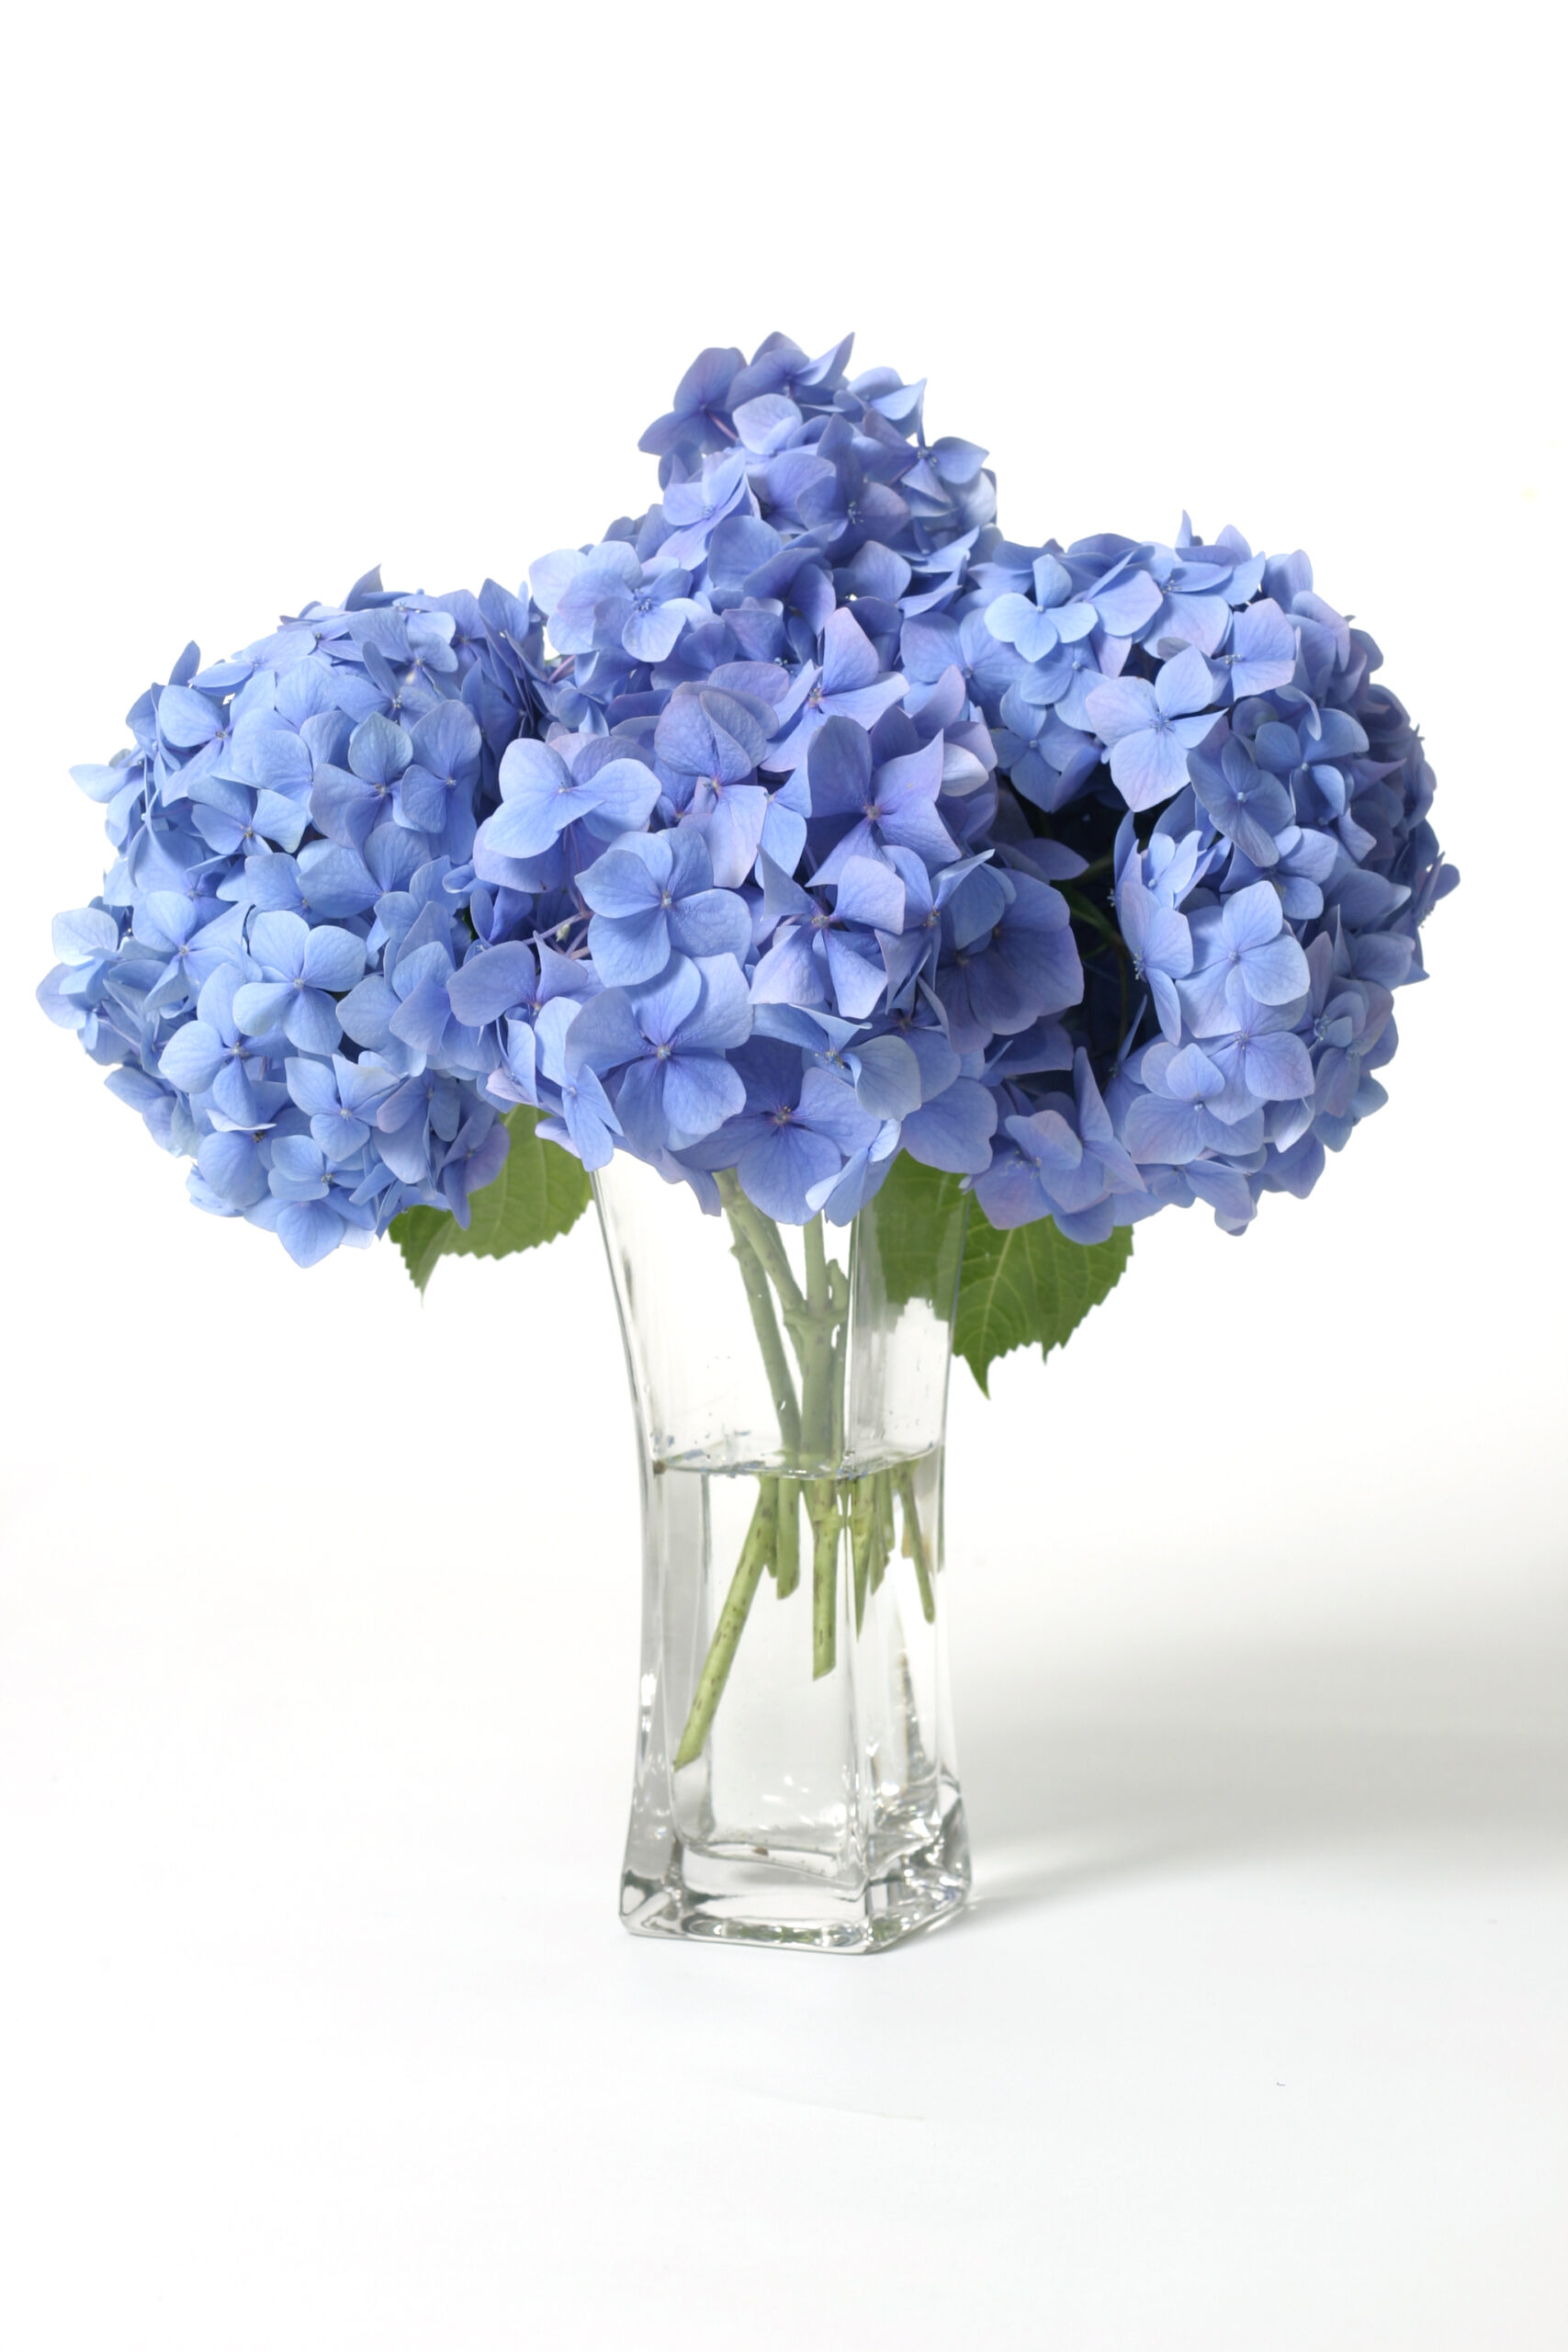 Sustainable flowers - Local flowers - flower shops - flowers for events - shop local - slow flowers - The bloomlist